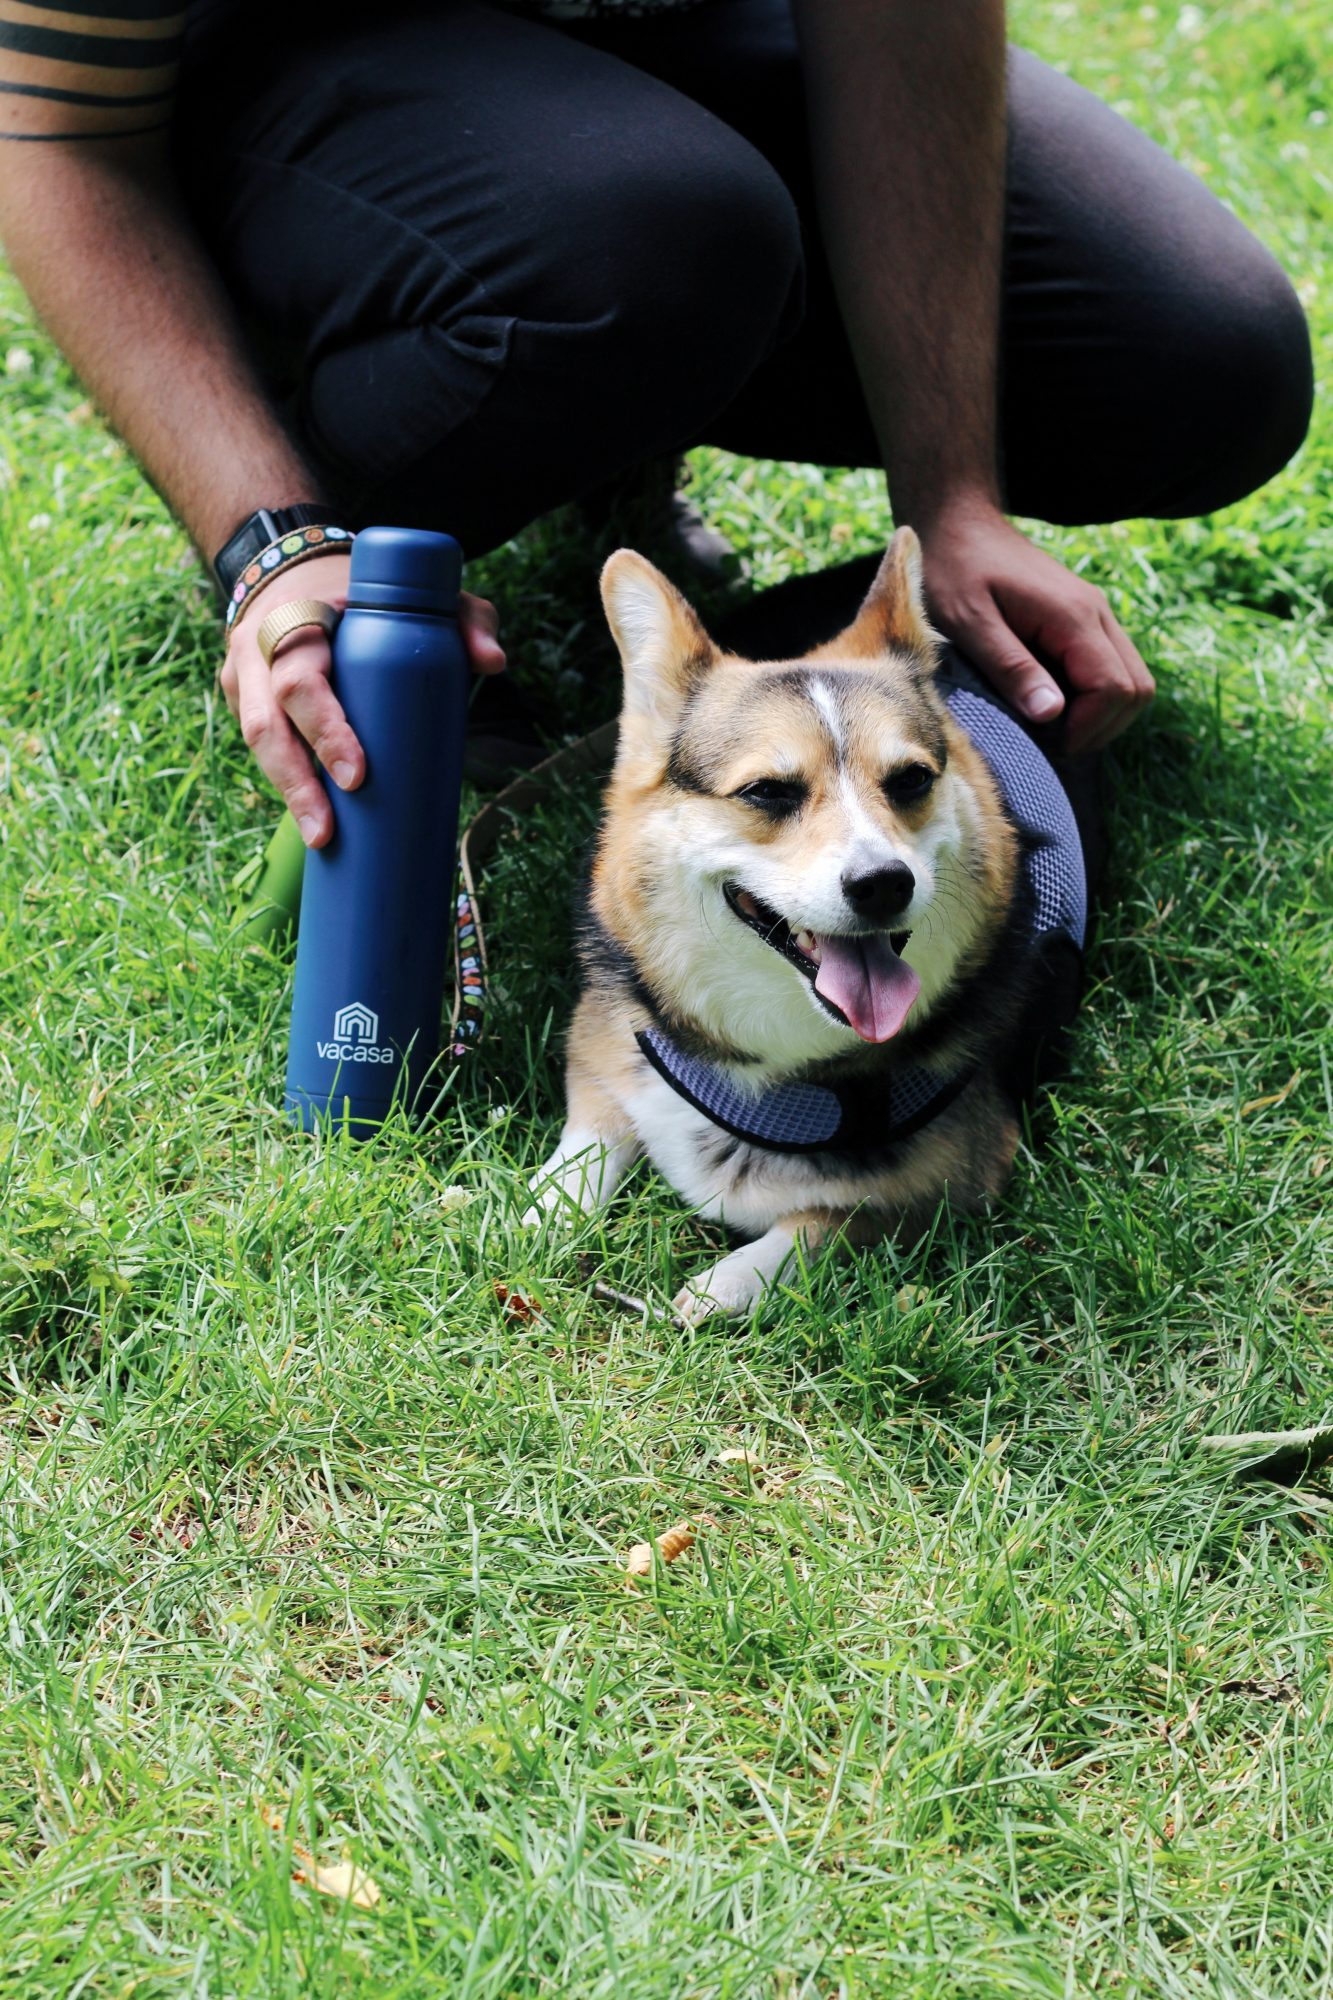 Pet-friendly traveling is easy when you're prepared